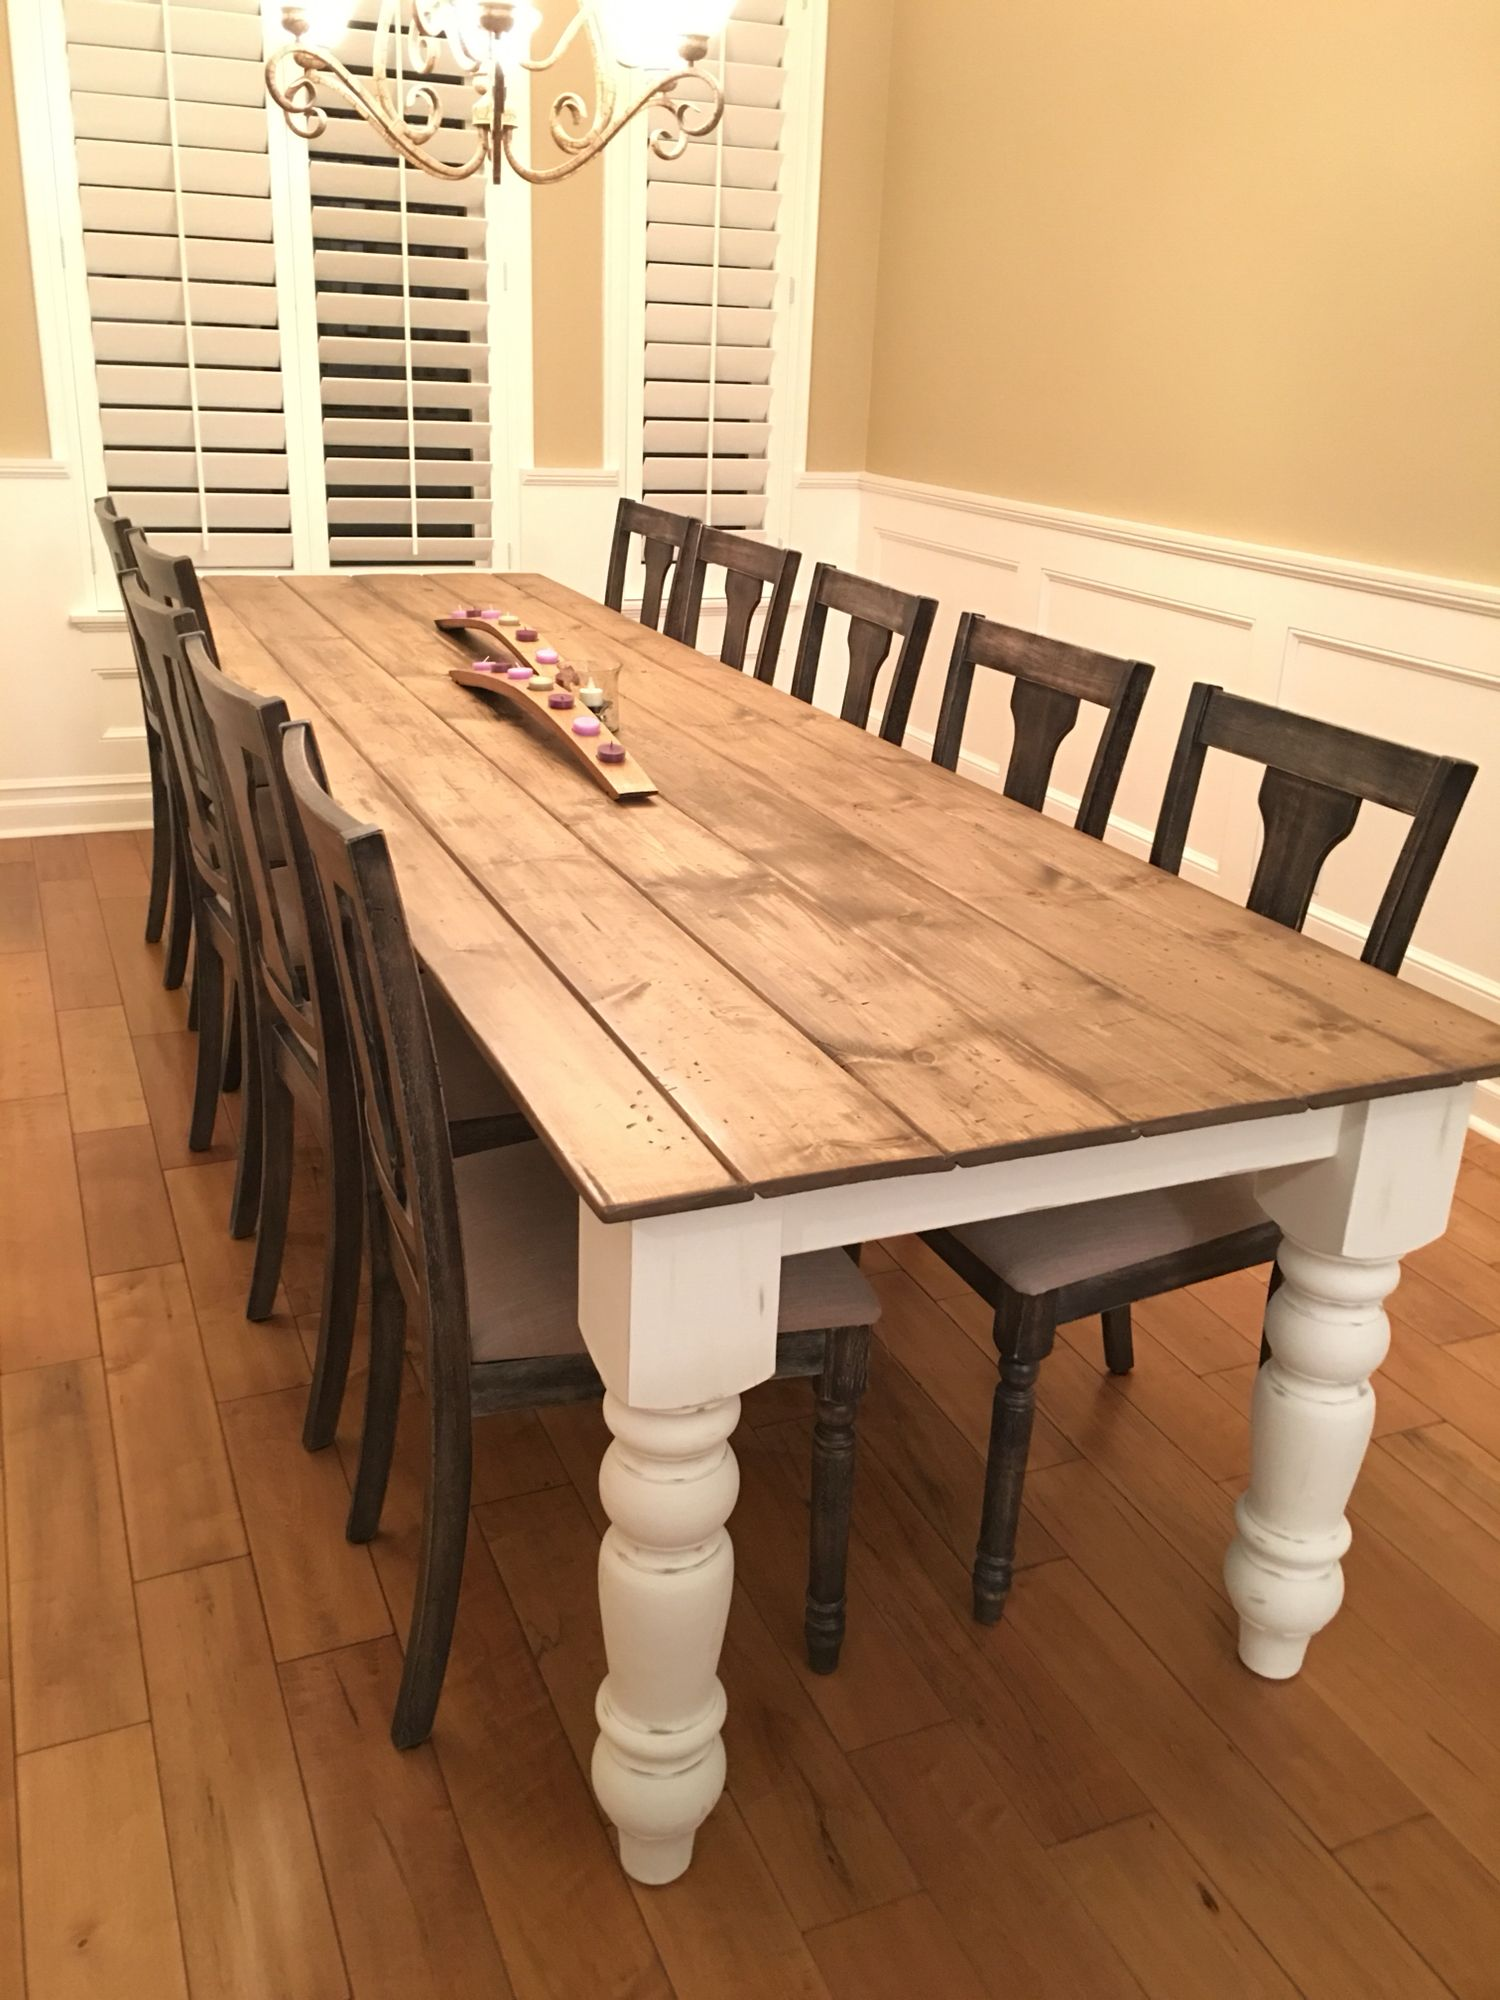 cheap farmhouse table and chairs vaginal steam chair diy my husband made 10 foot 8 inch